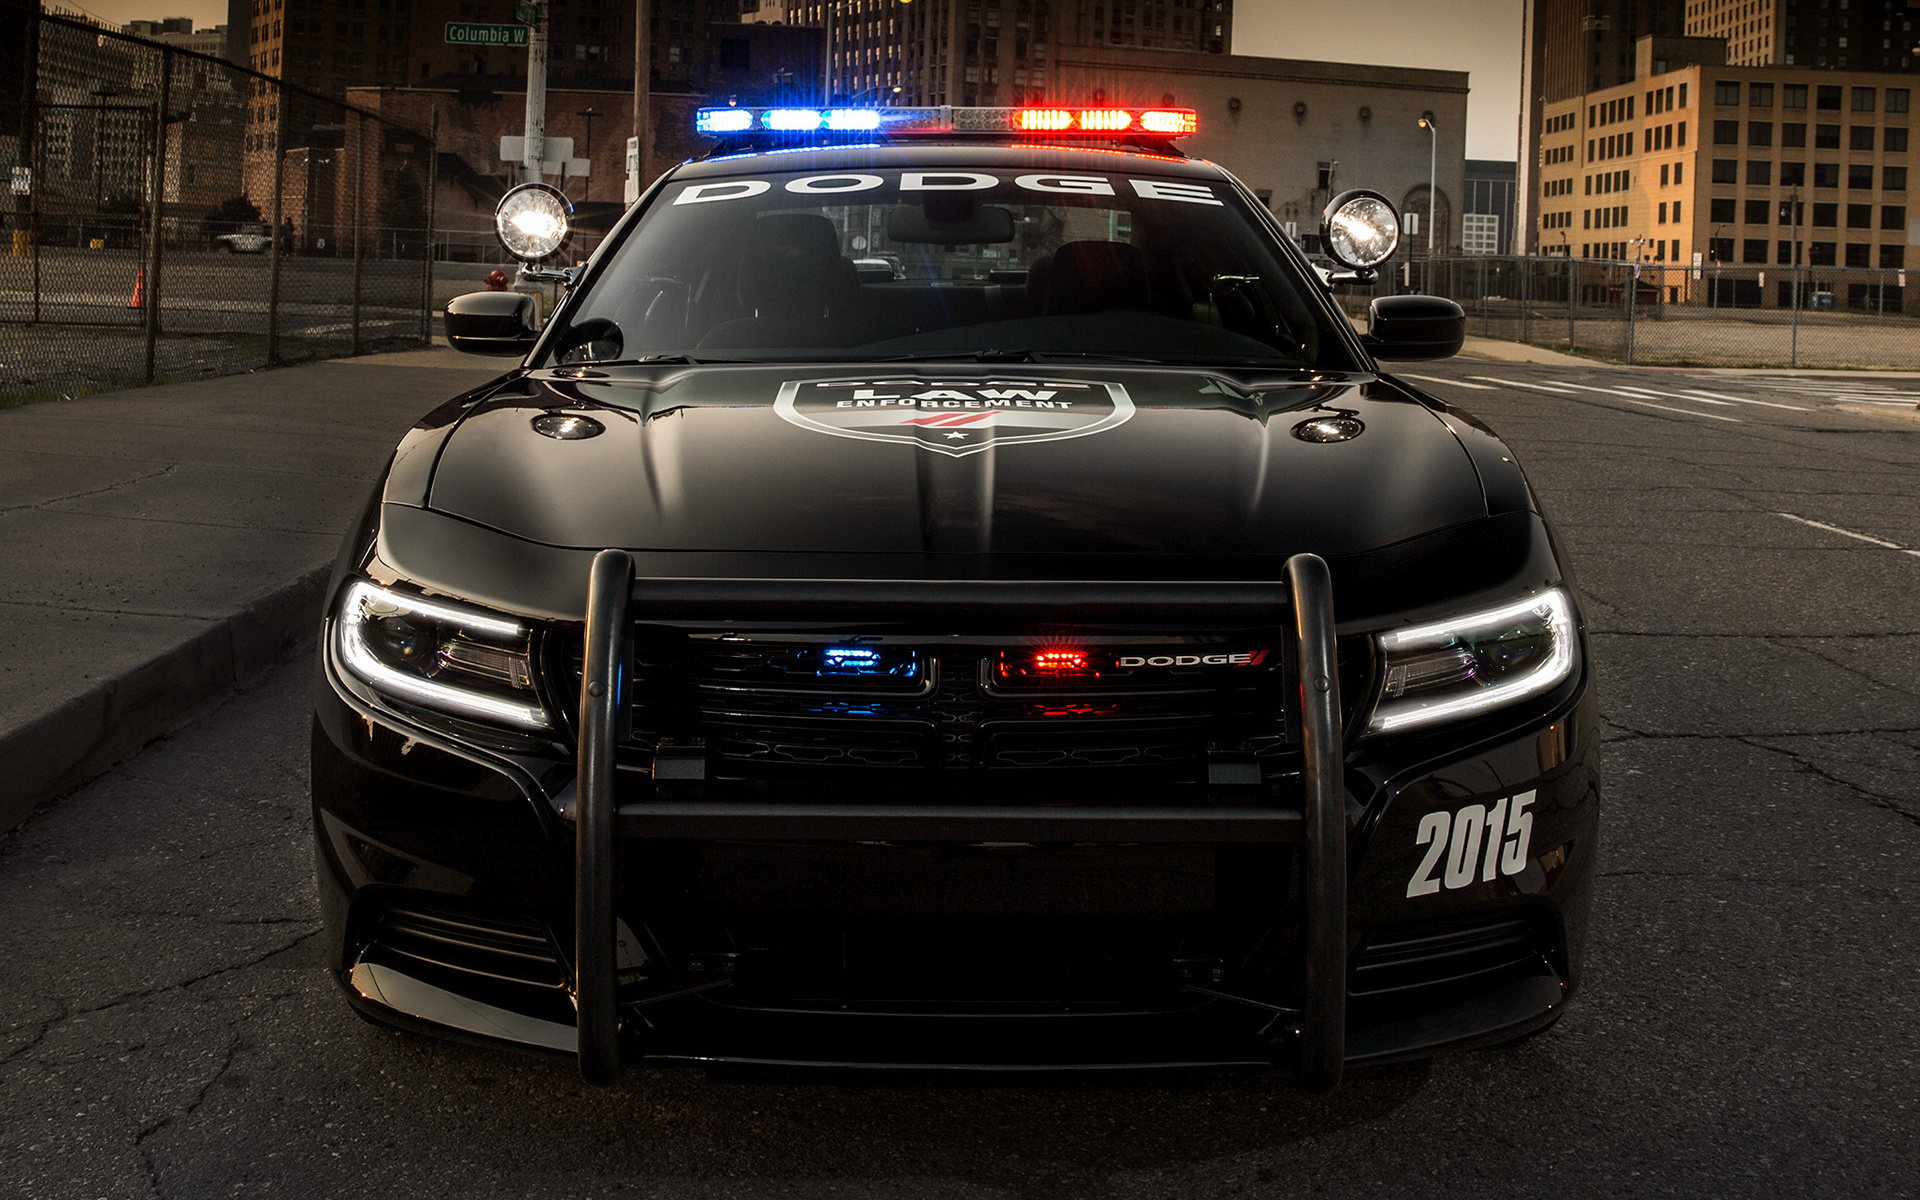 2015 Dodge Charger Pursuit AWD